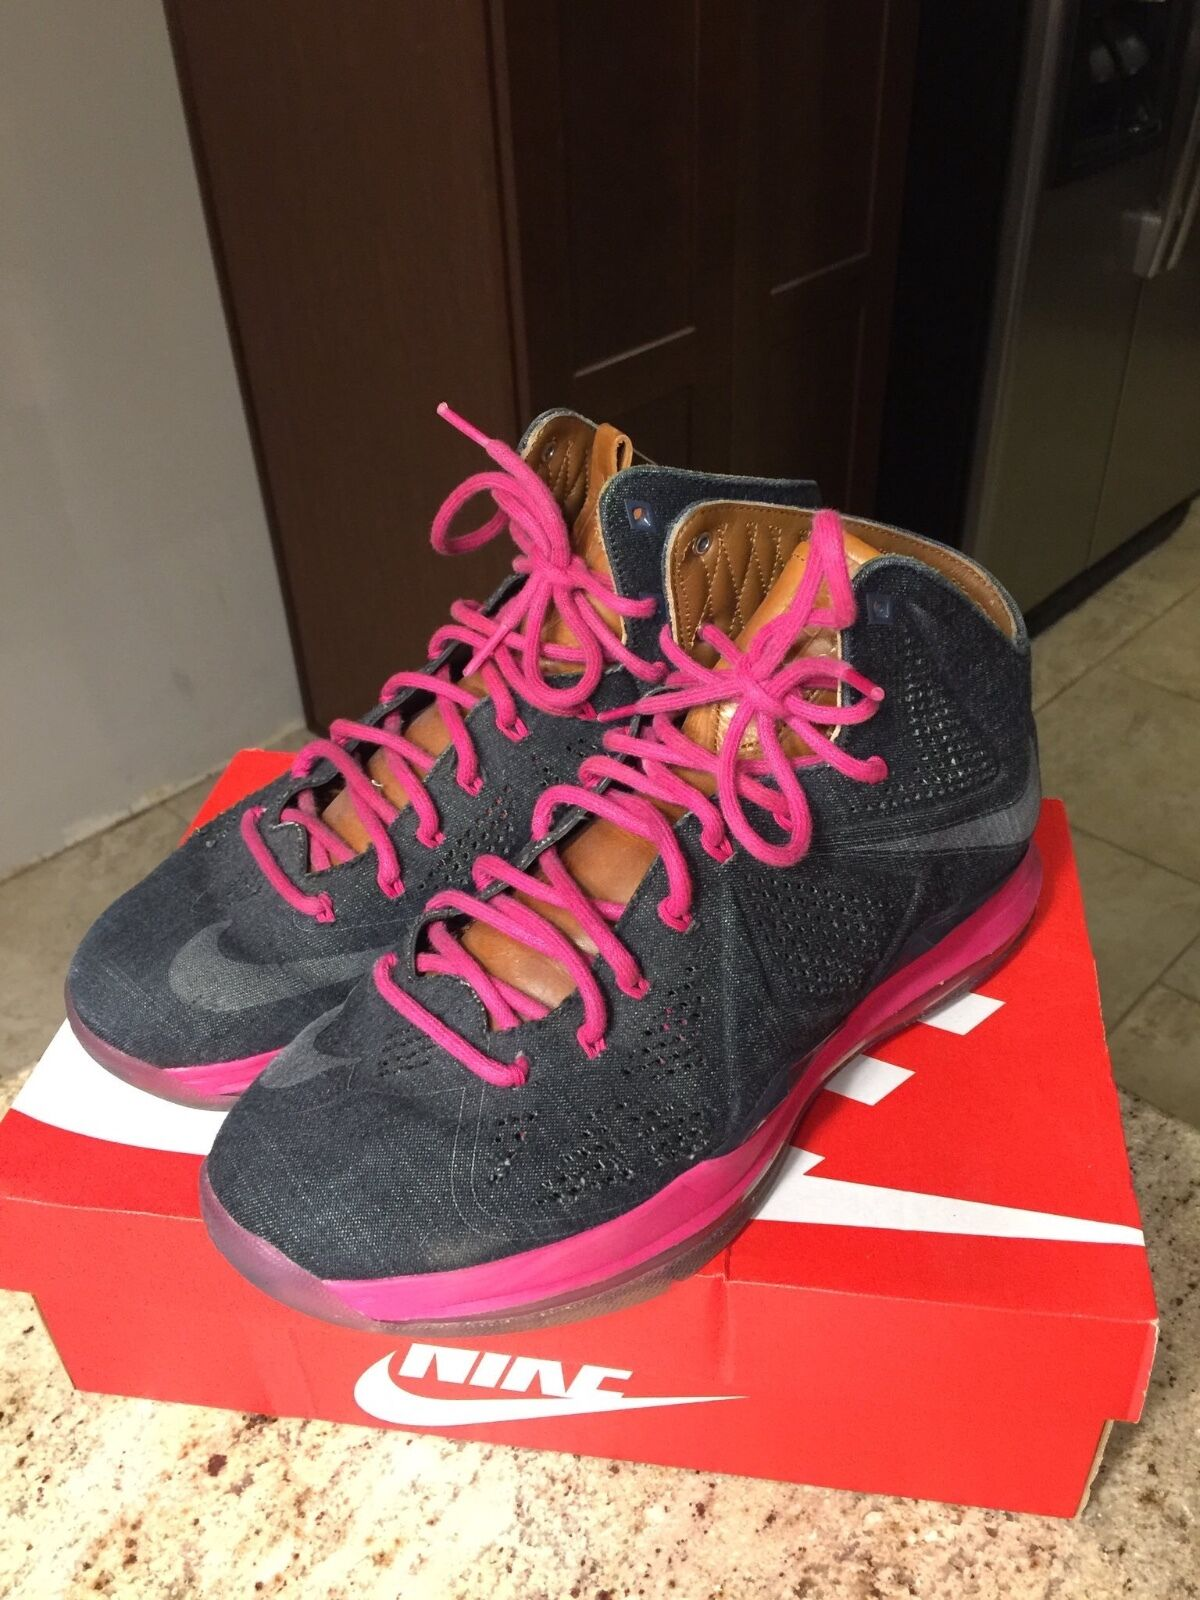 Lebron 10 Denims Size 10.5  Cheap and fashionable